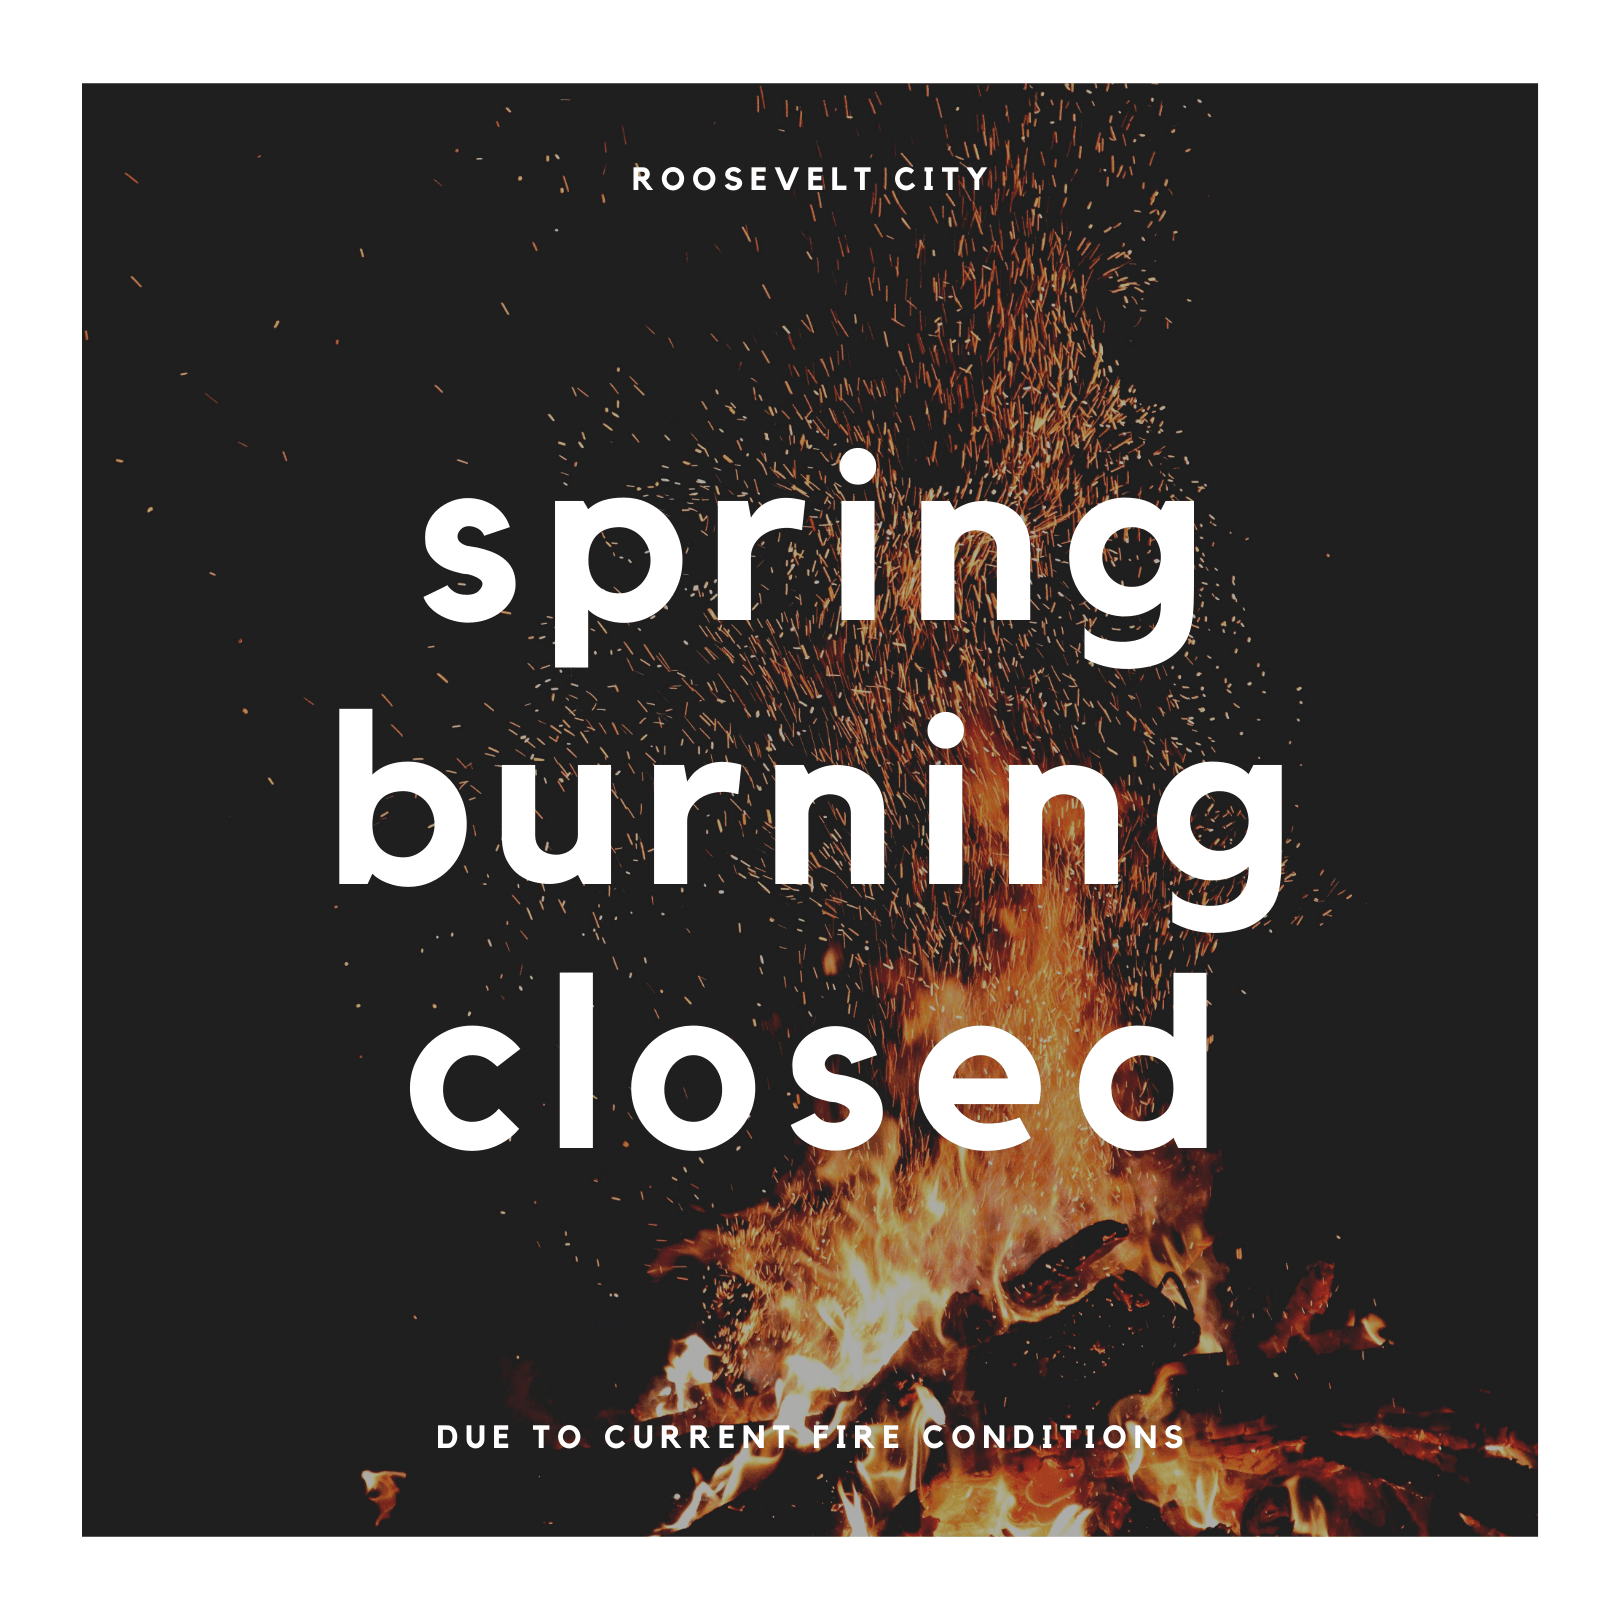 "Fire burning against black background with text reading ""Roosevelt City spring burning closed"""